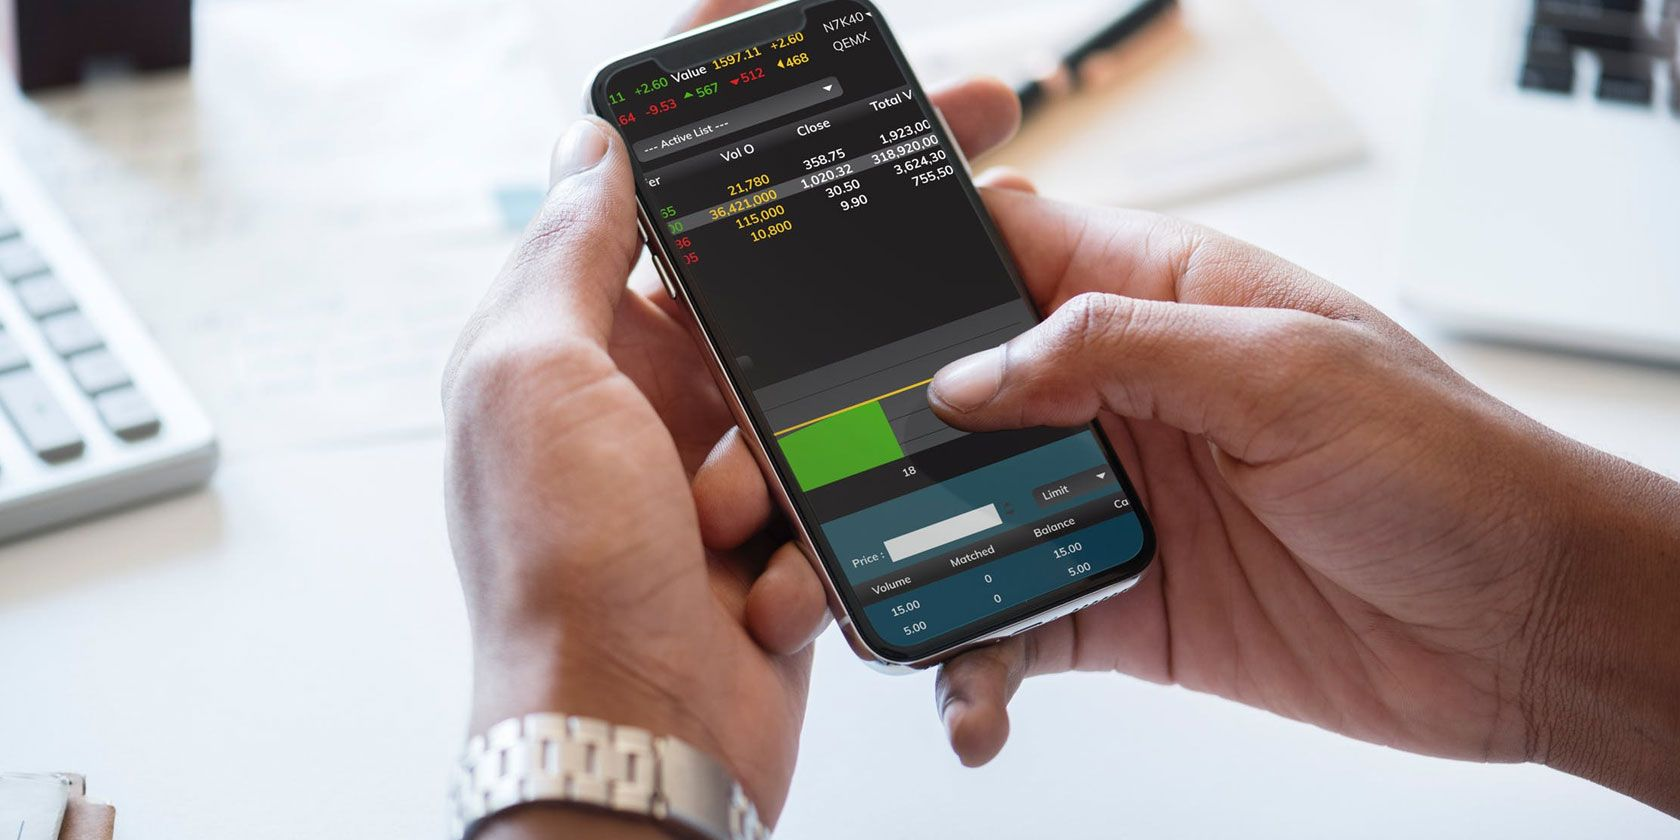 The 5 Best Free Stock Market Apps for Android and iOS